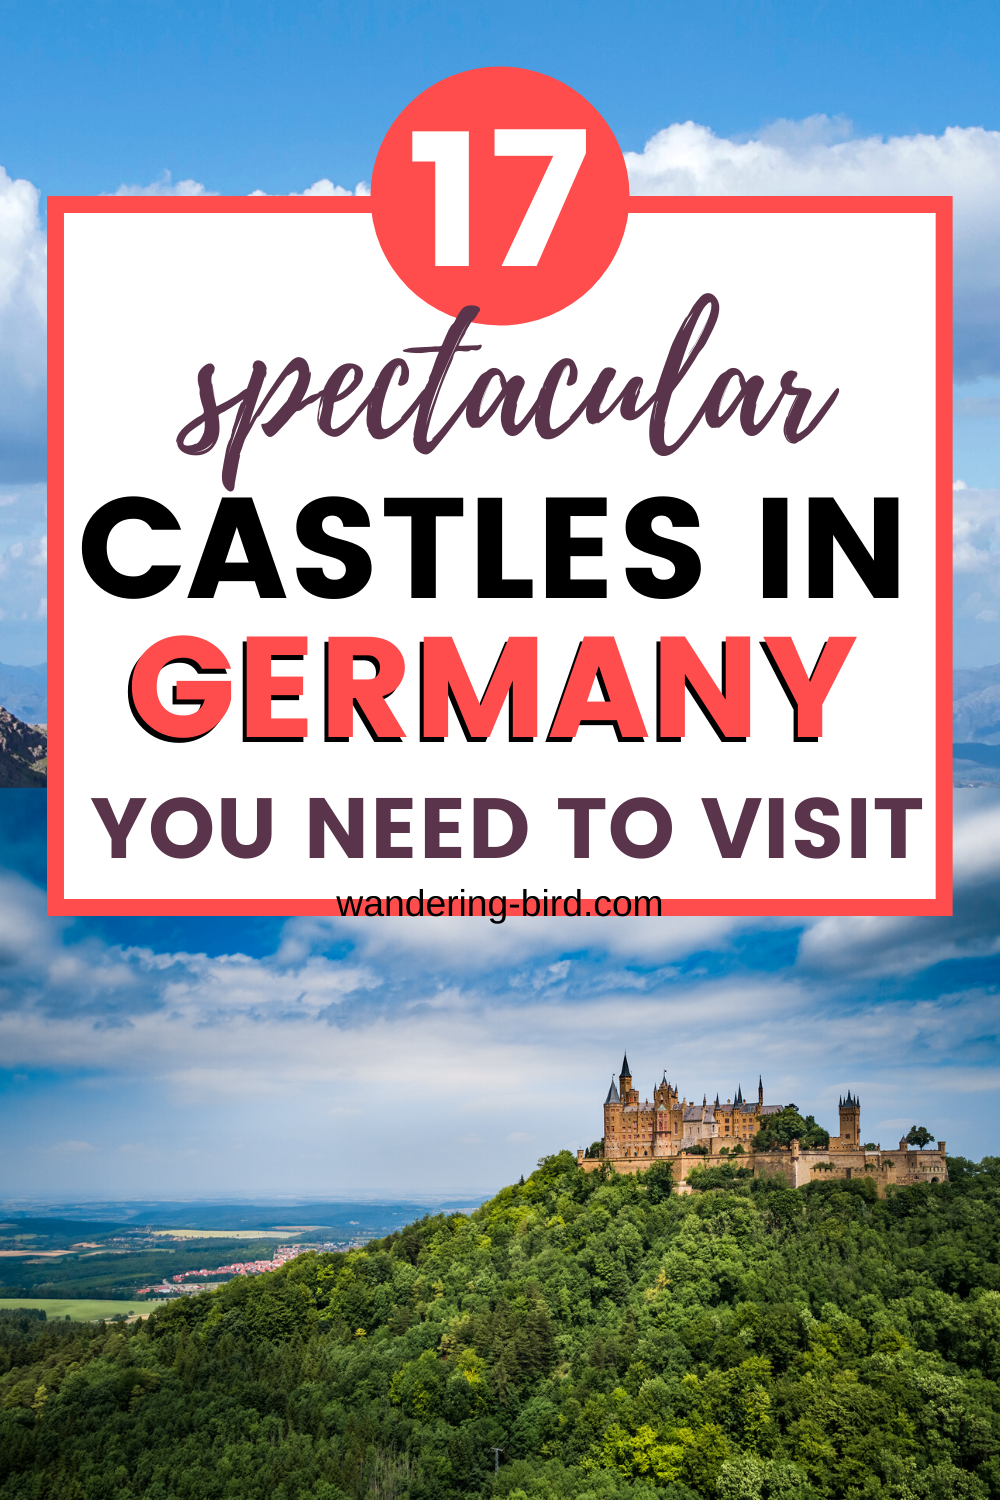 Germany Castles- 17 Spectacular castles in Germany to visit (map included!)